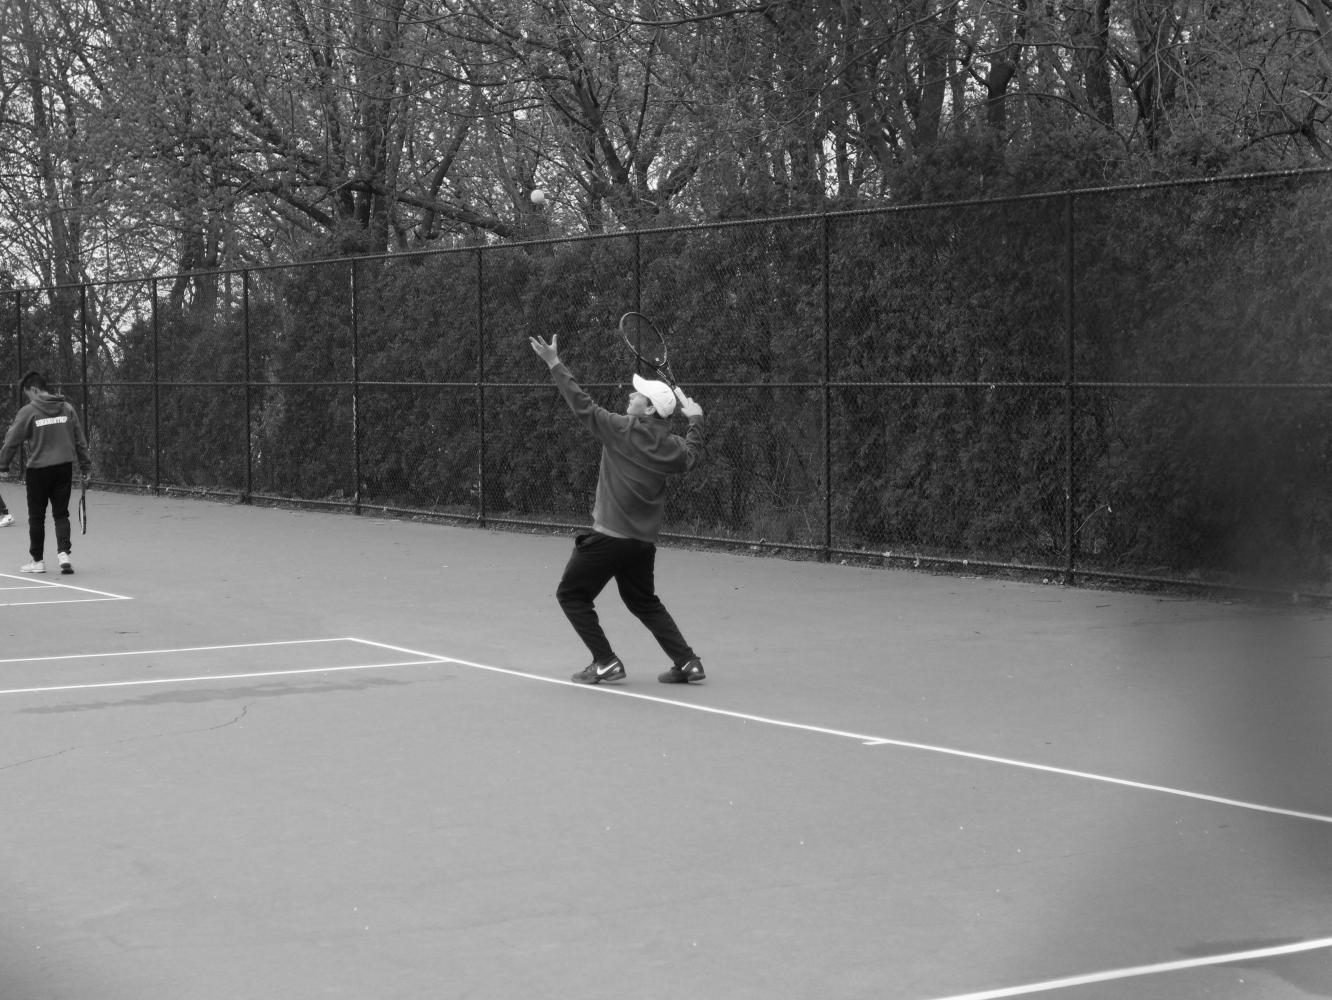 Senior Austin Agna prepares to serve the ball against Cold Spring Harbor at a home match on April 5. The Vikings won the match 6-1.